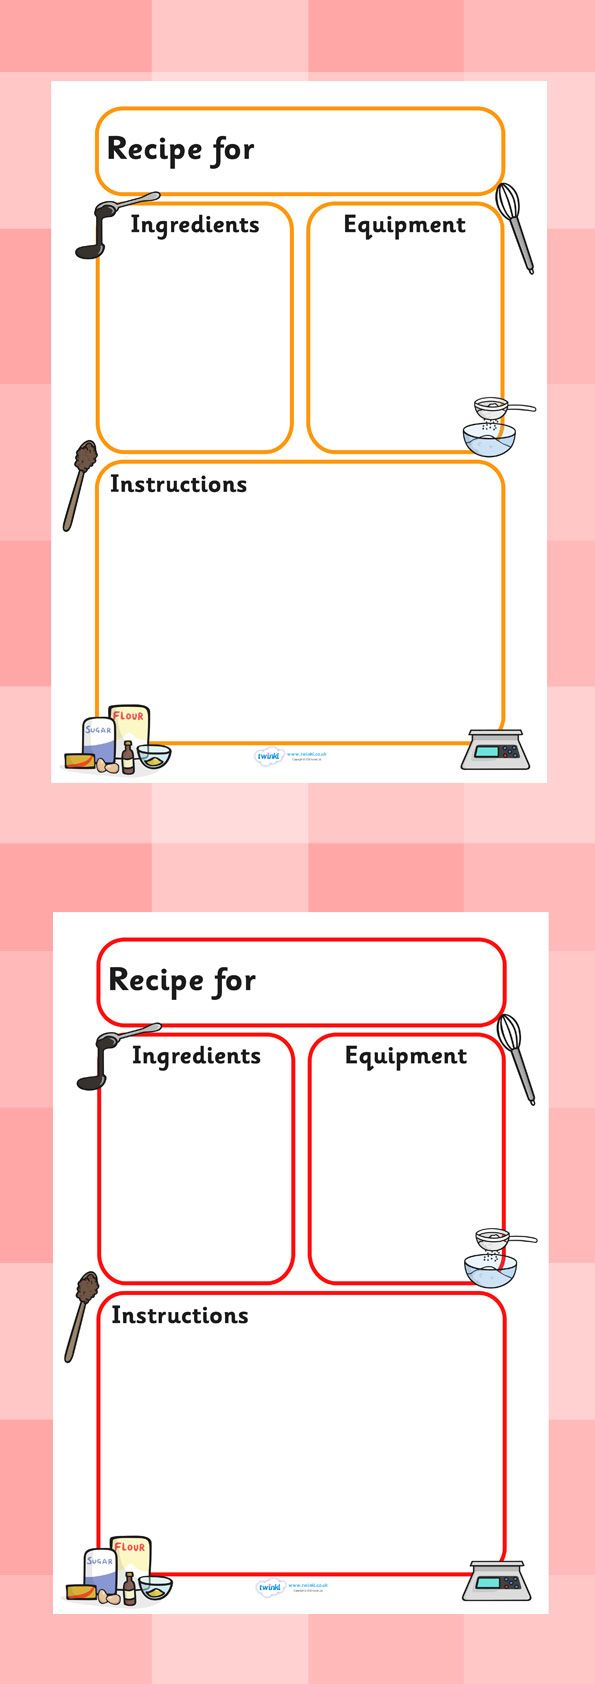 Twinkl resources recipe templates classroom printables for twinkl resources recipe templates classroom printables for pre school kindergarten forumfinder Images